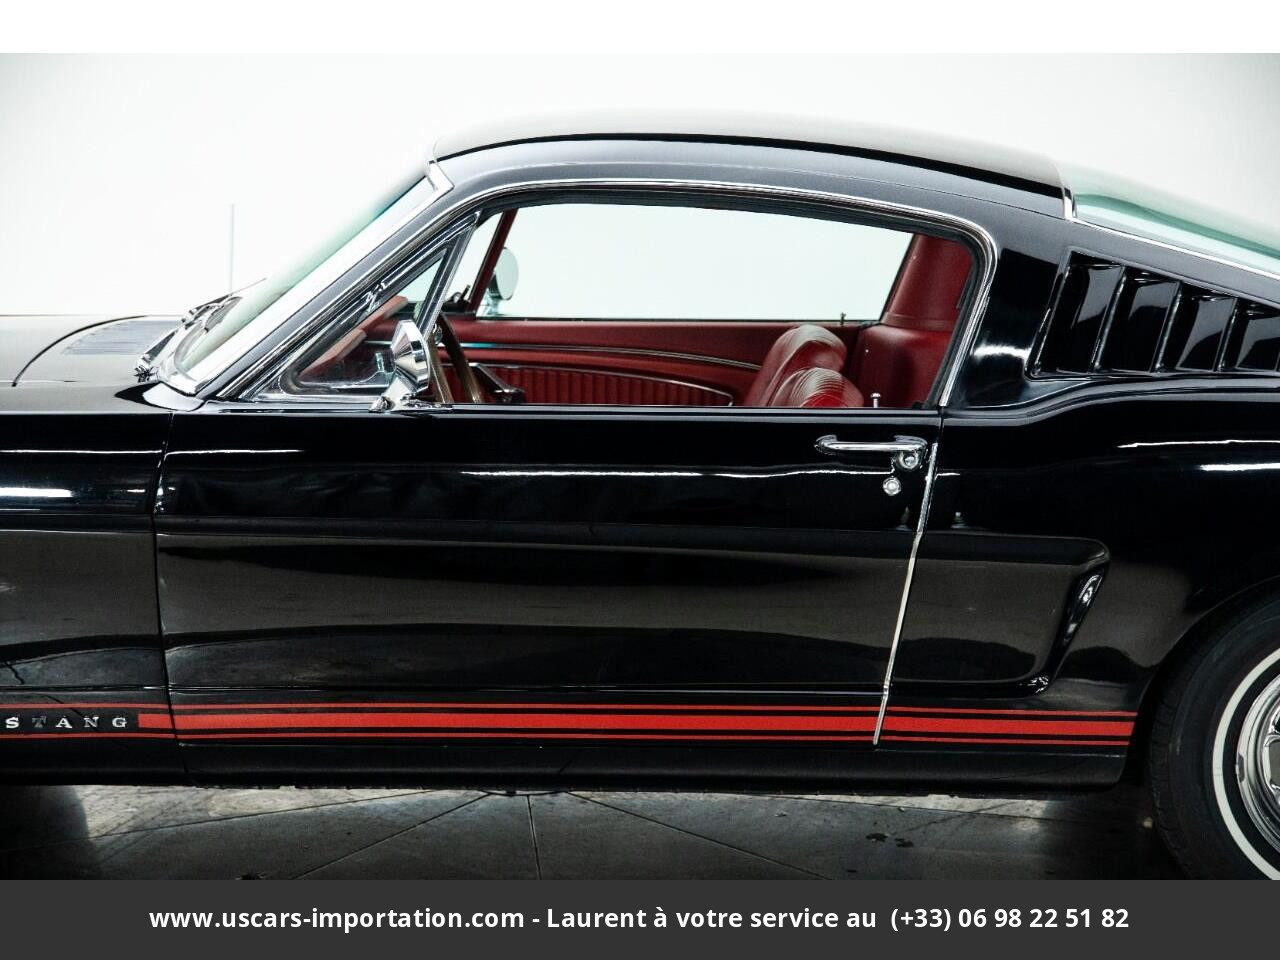 Ford Mustang Fastback code a pony pack 1965v8 prix tout compris